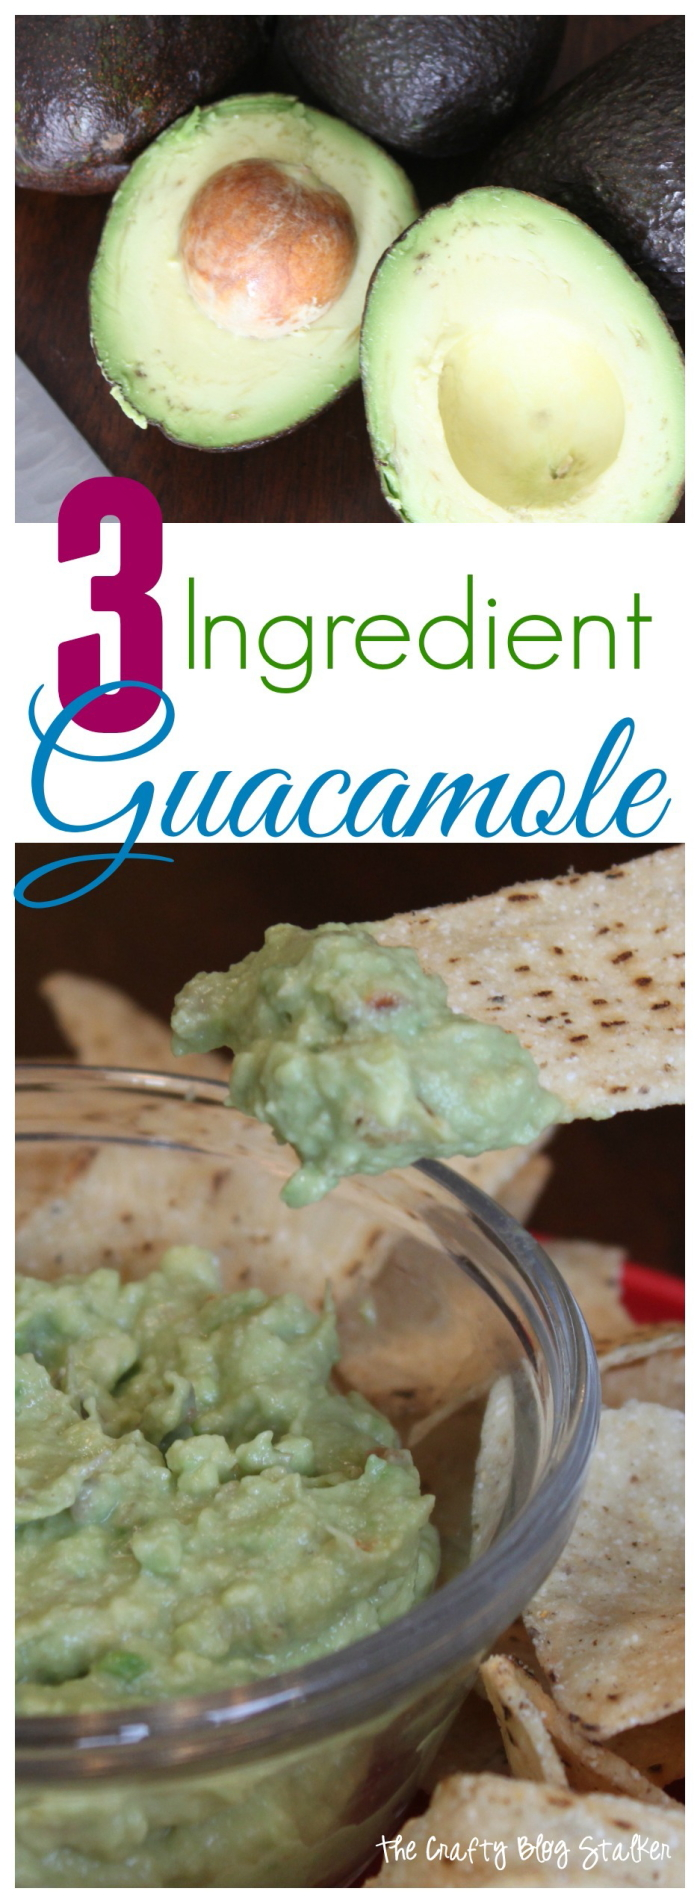 header image for How to Make Guacamole Dip with only 3 Ingredients avocados, salsa, sour cream